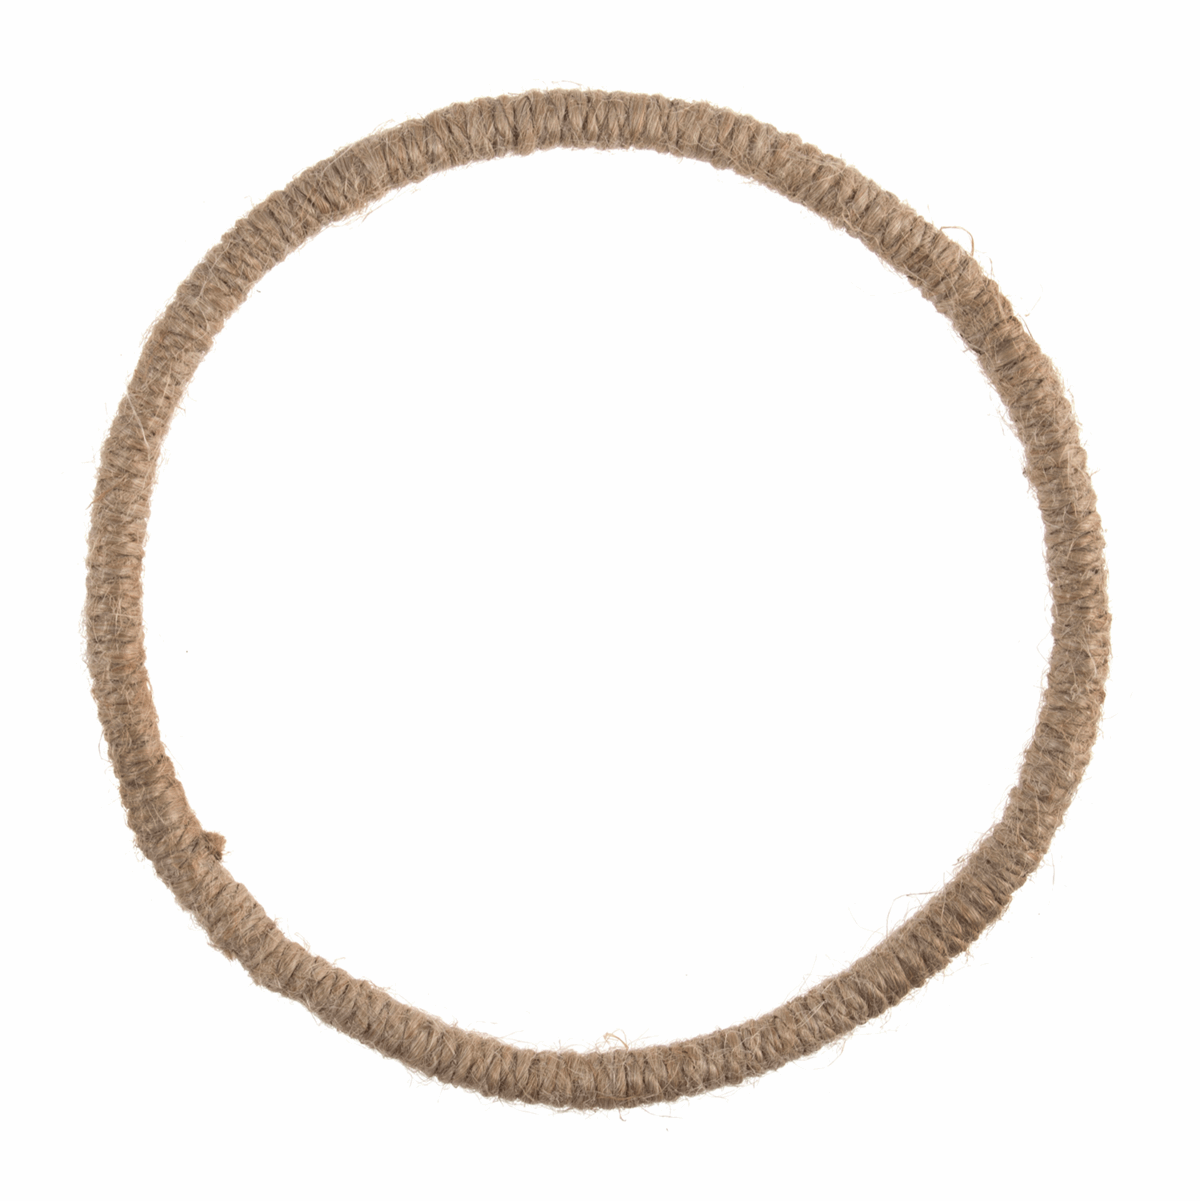 Macrame Jute Wrapped Wire Hoop Wreath Base - 14cm/5.5in